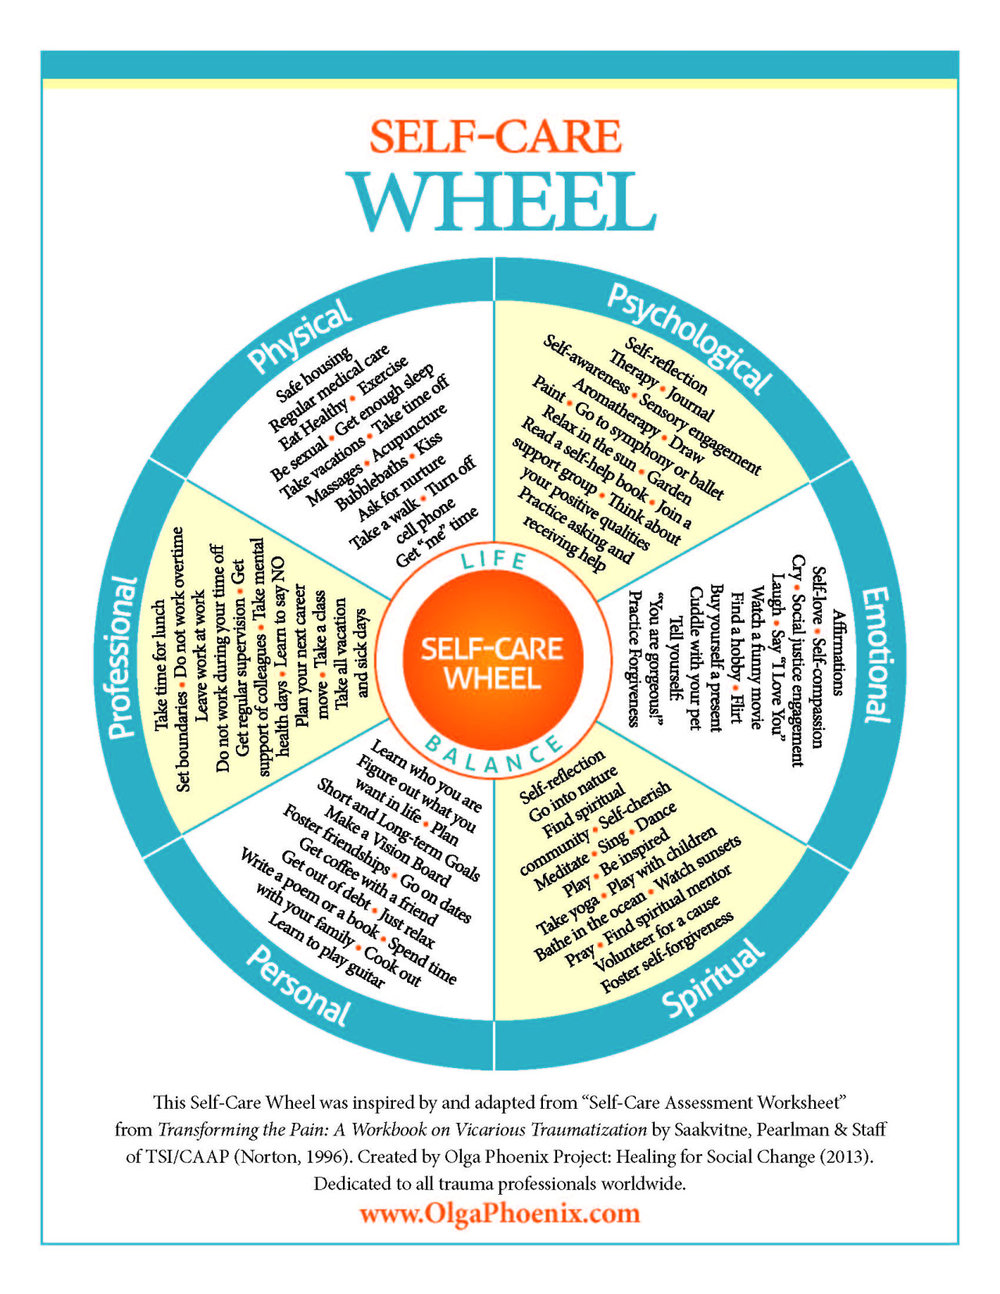 Self-care wheel. What on here are you already practicing and what new practices can you try?